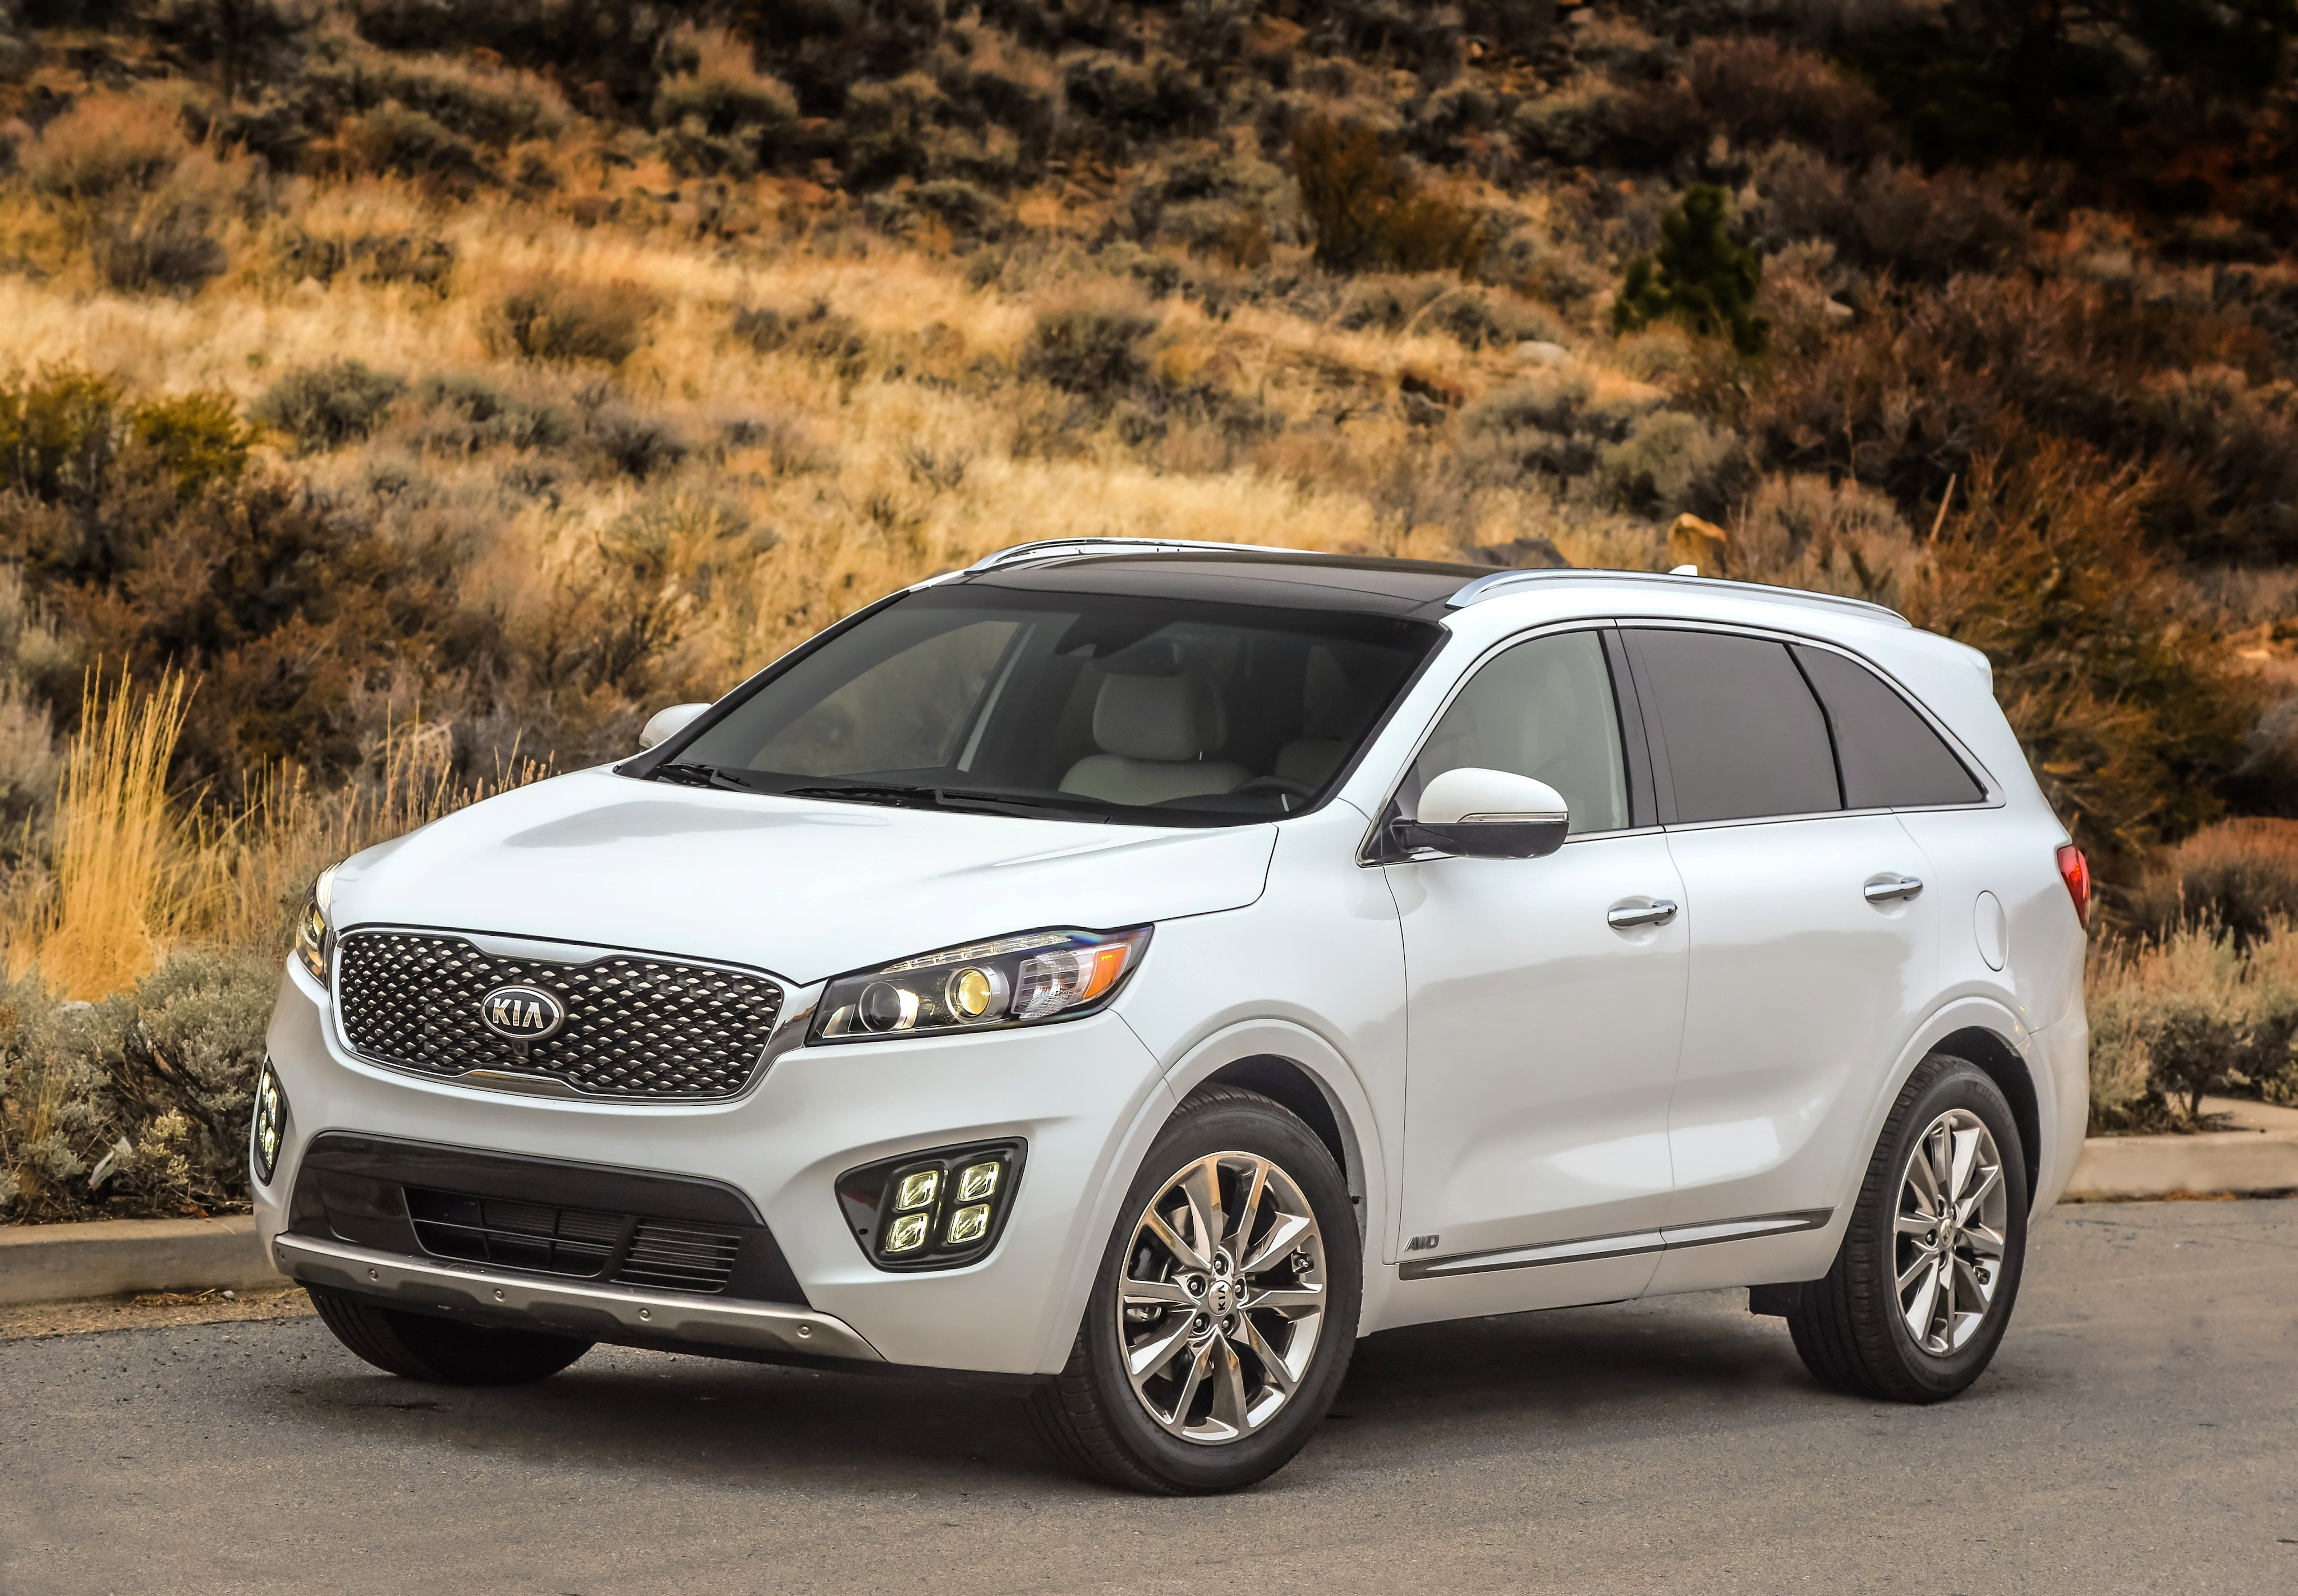 Kia Is Highest Rated Non Luxury Car Brand In Annual Jd Power Study